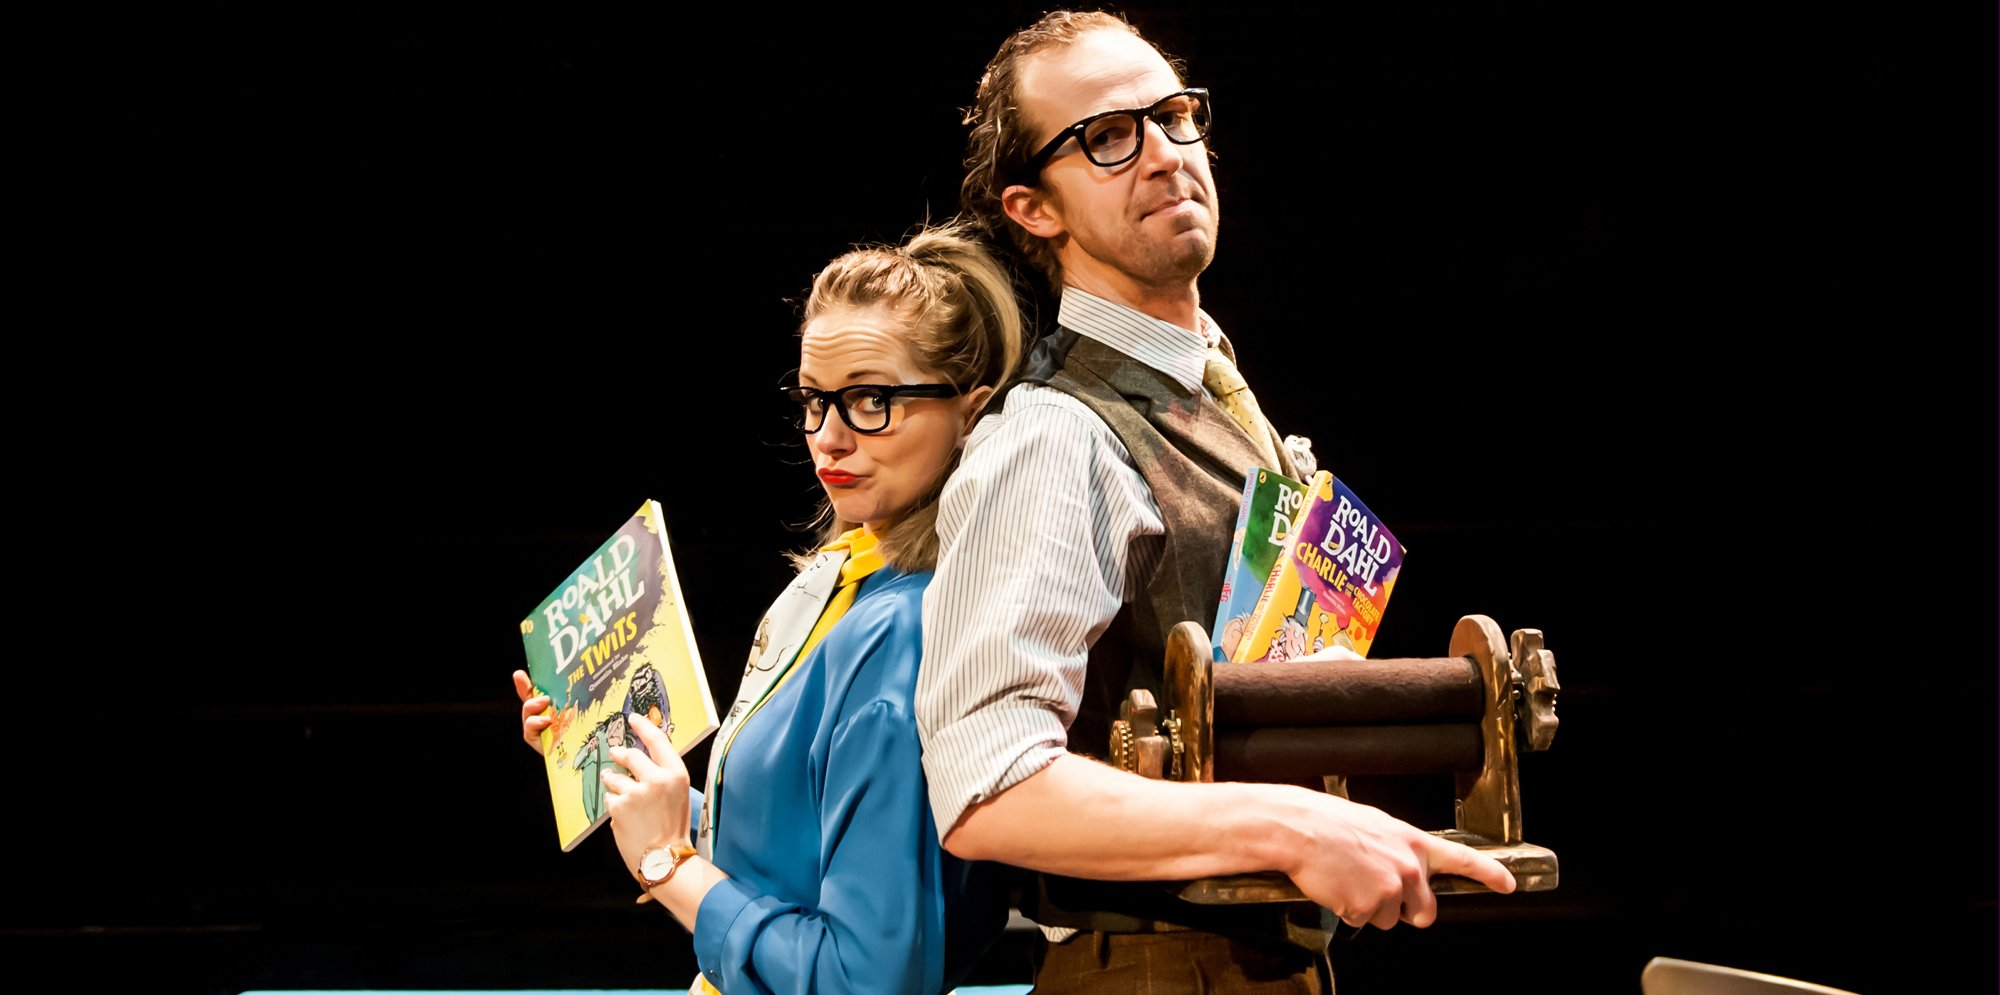 Roald Dahl: A man and a woman stand bacl to back. She holds up a Roald Dahl book, he holds a spindle, more Roald Dahl books pressed against his chest